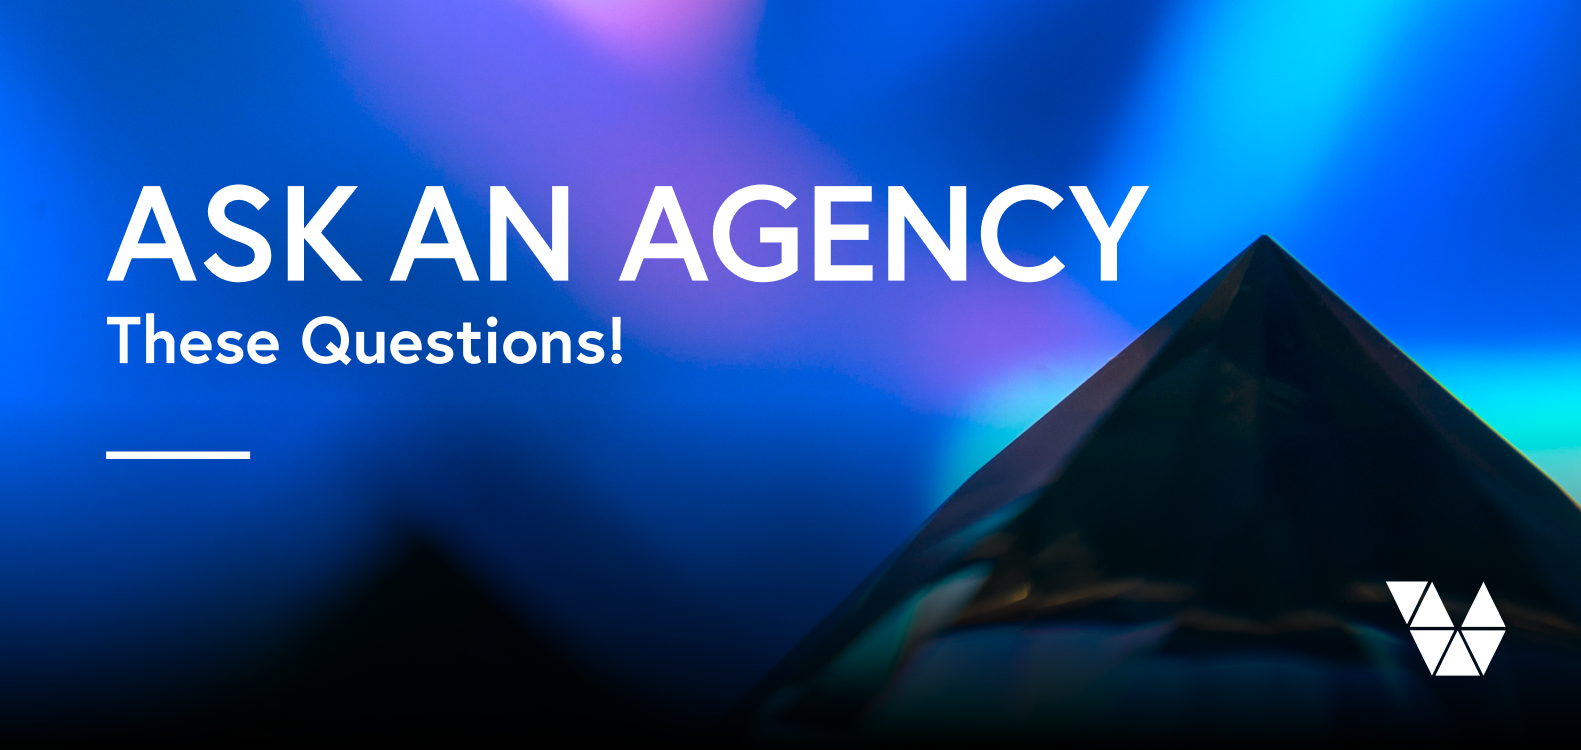 ask an agency these questions, questions to ask an agency